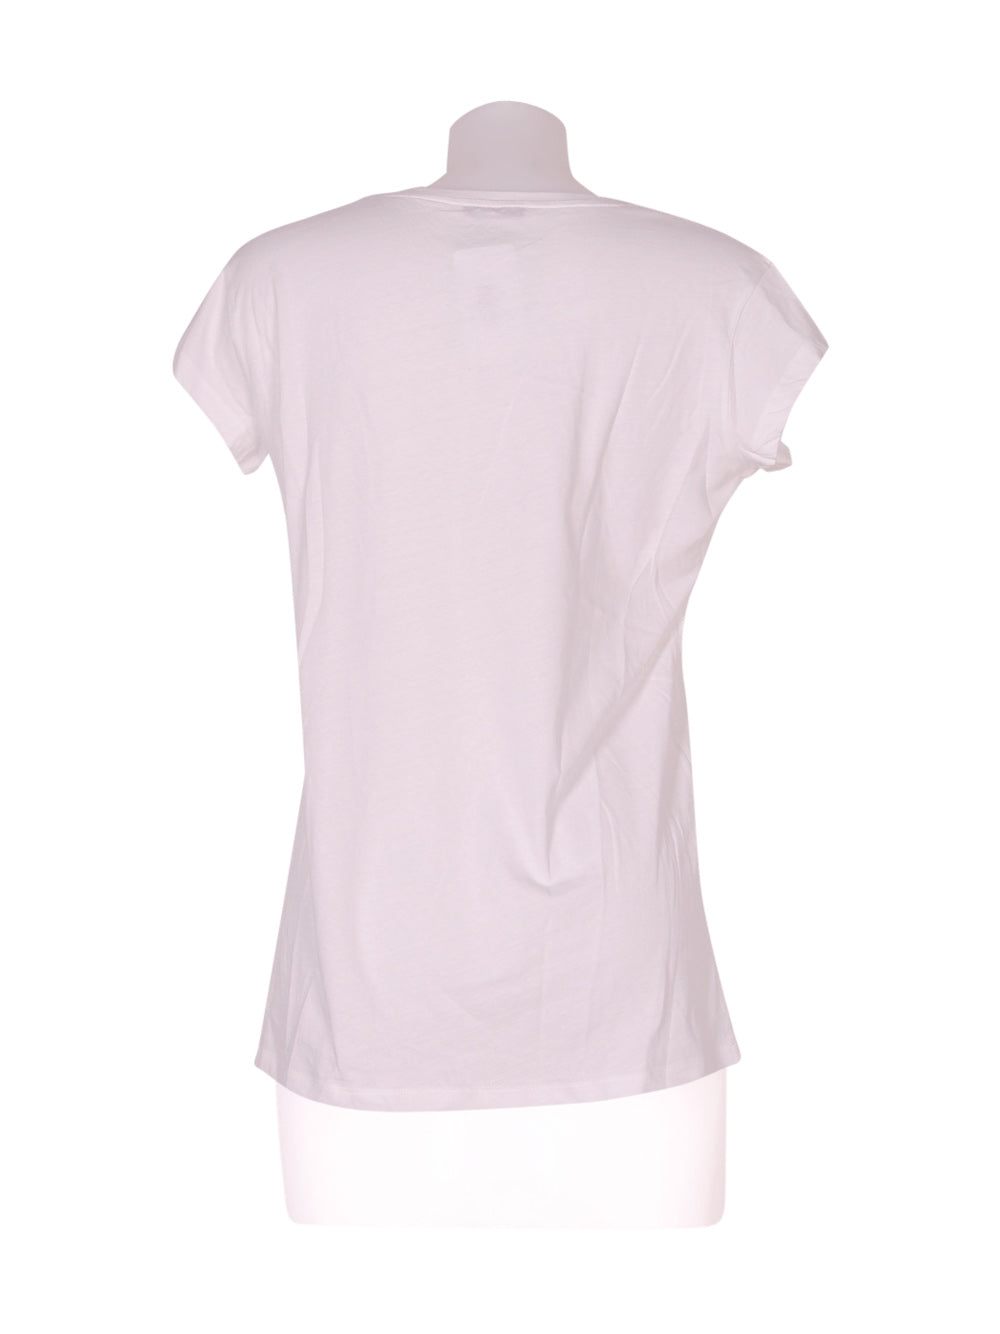 Back photo of Preloved I blues White Woman's t-shirt - size 12/L